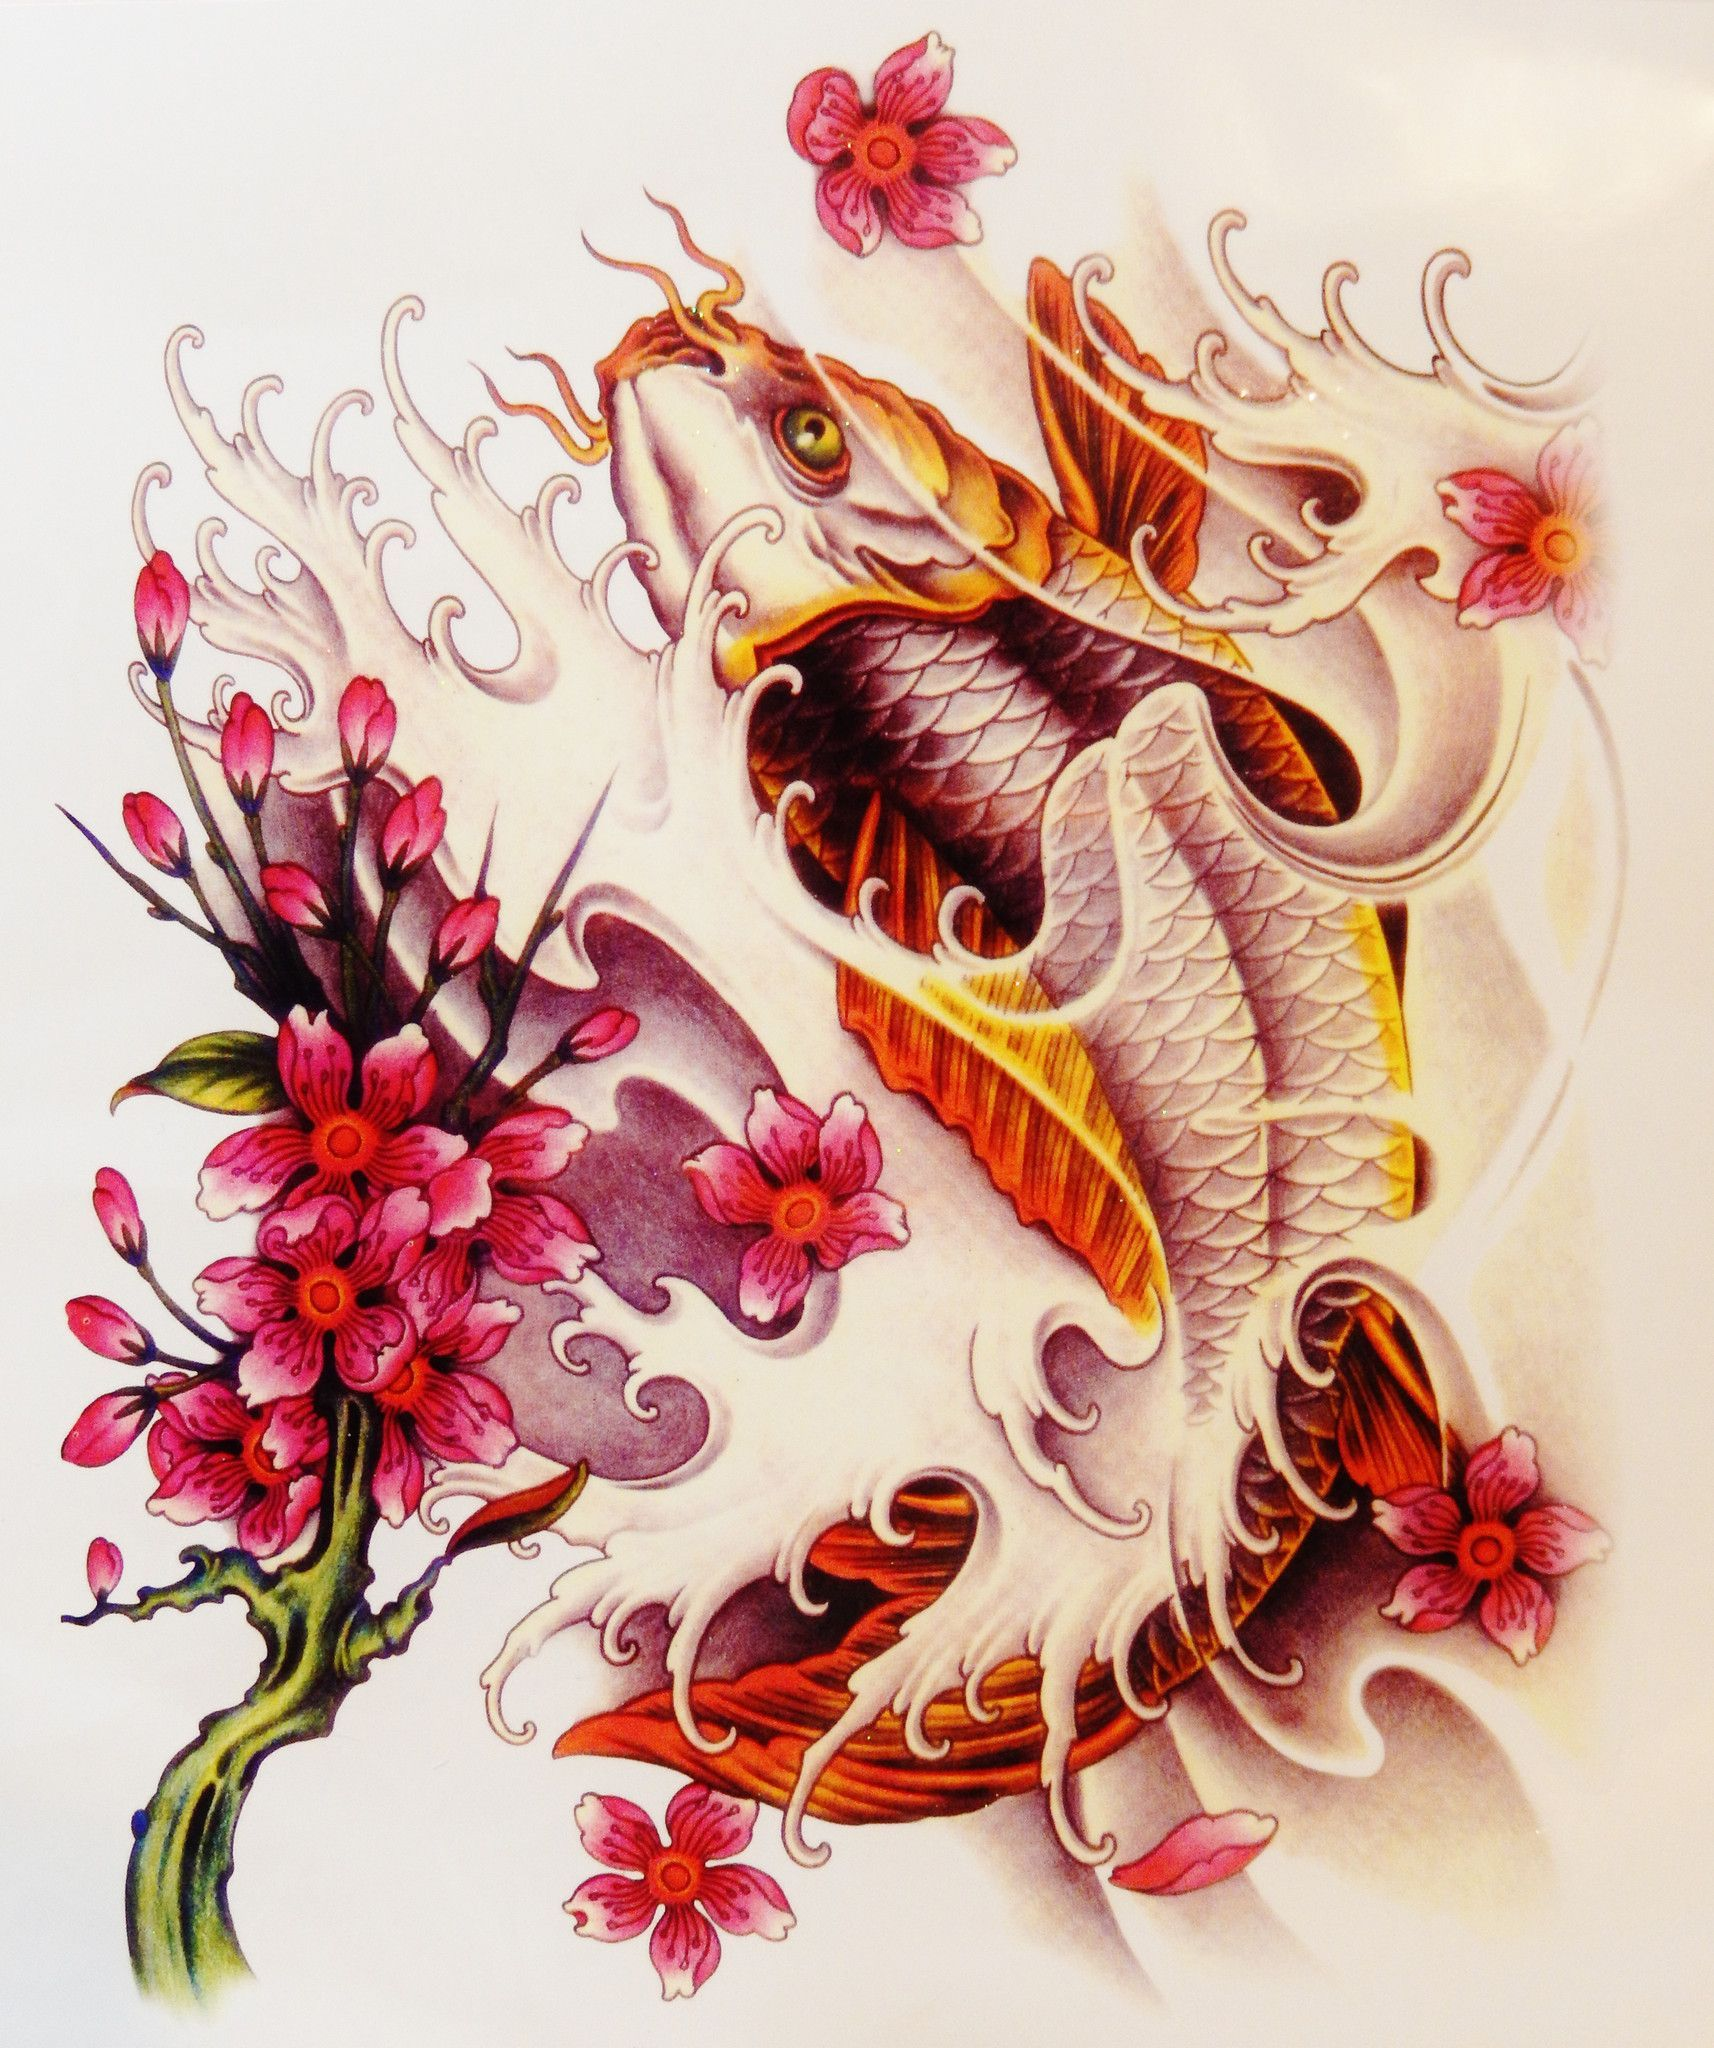 Large Colorful Koi Fish Temporary Tattoo | Cá Chép | Pinterest | Koi ...